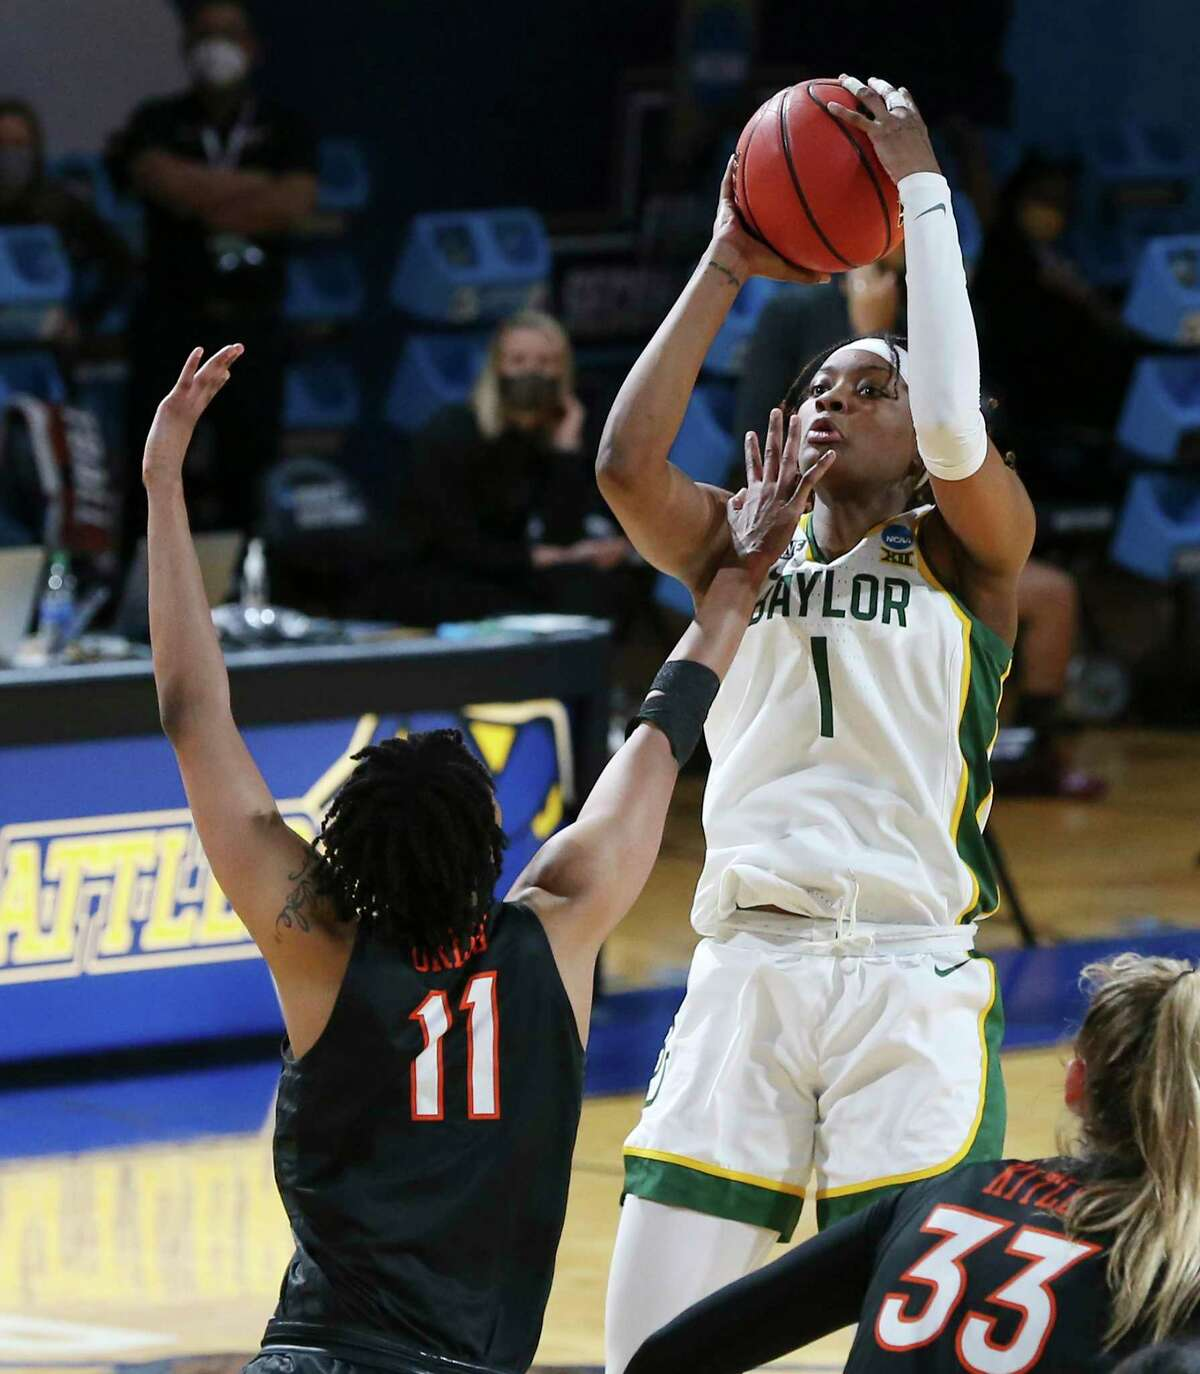 Baylor's NaLyssa Smith (01) scores against Virginia Tech's D'asia Gregg (11) in the second round of the 2021 NCAA Div. I Women's Basketball Championship at Greehey Arena on Tuesday, Mar. 23, 2021.